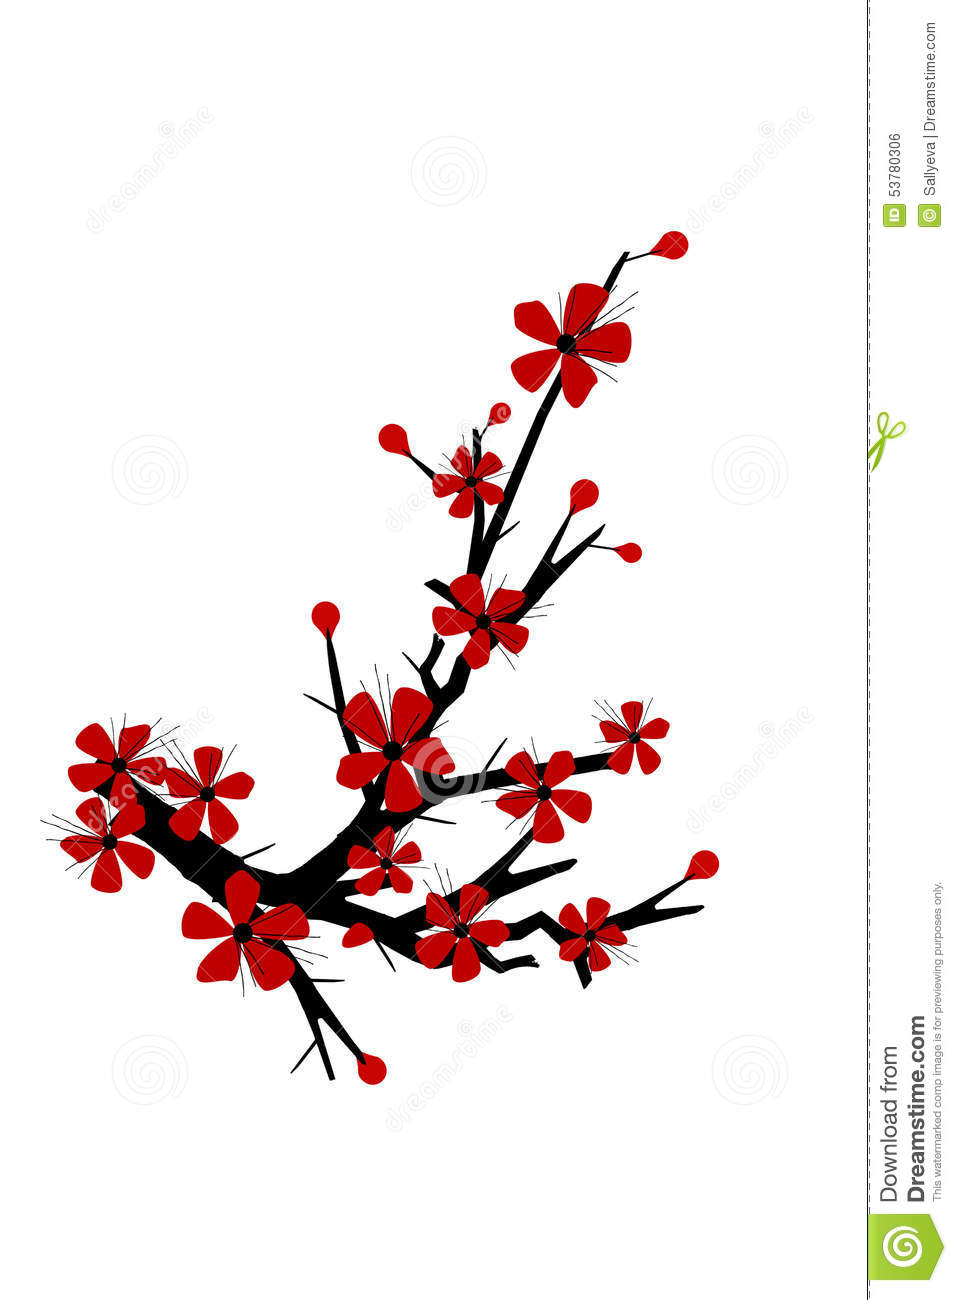 Cherry Blossom Tree Silhouette Stock Illustrations 2 626 Cherry Blossom Tree Silhouette Stock Illustrations Vectors Clipart Dreamstime